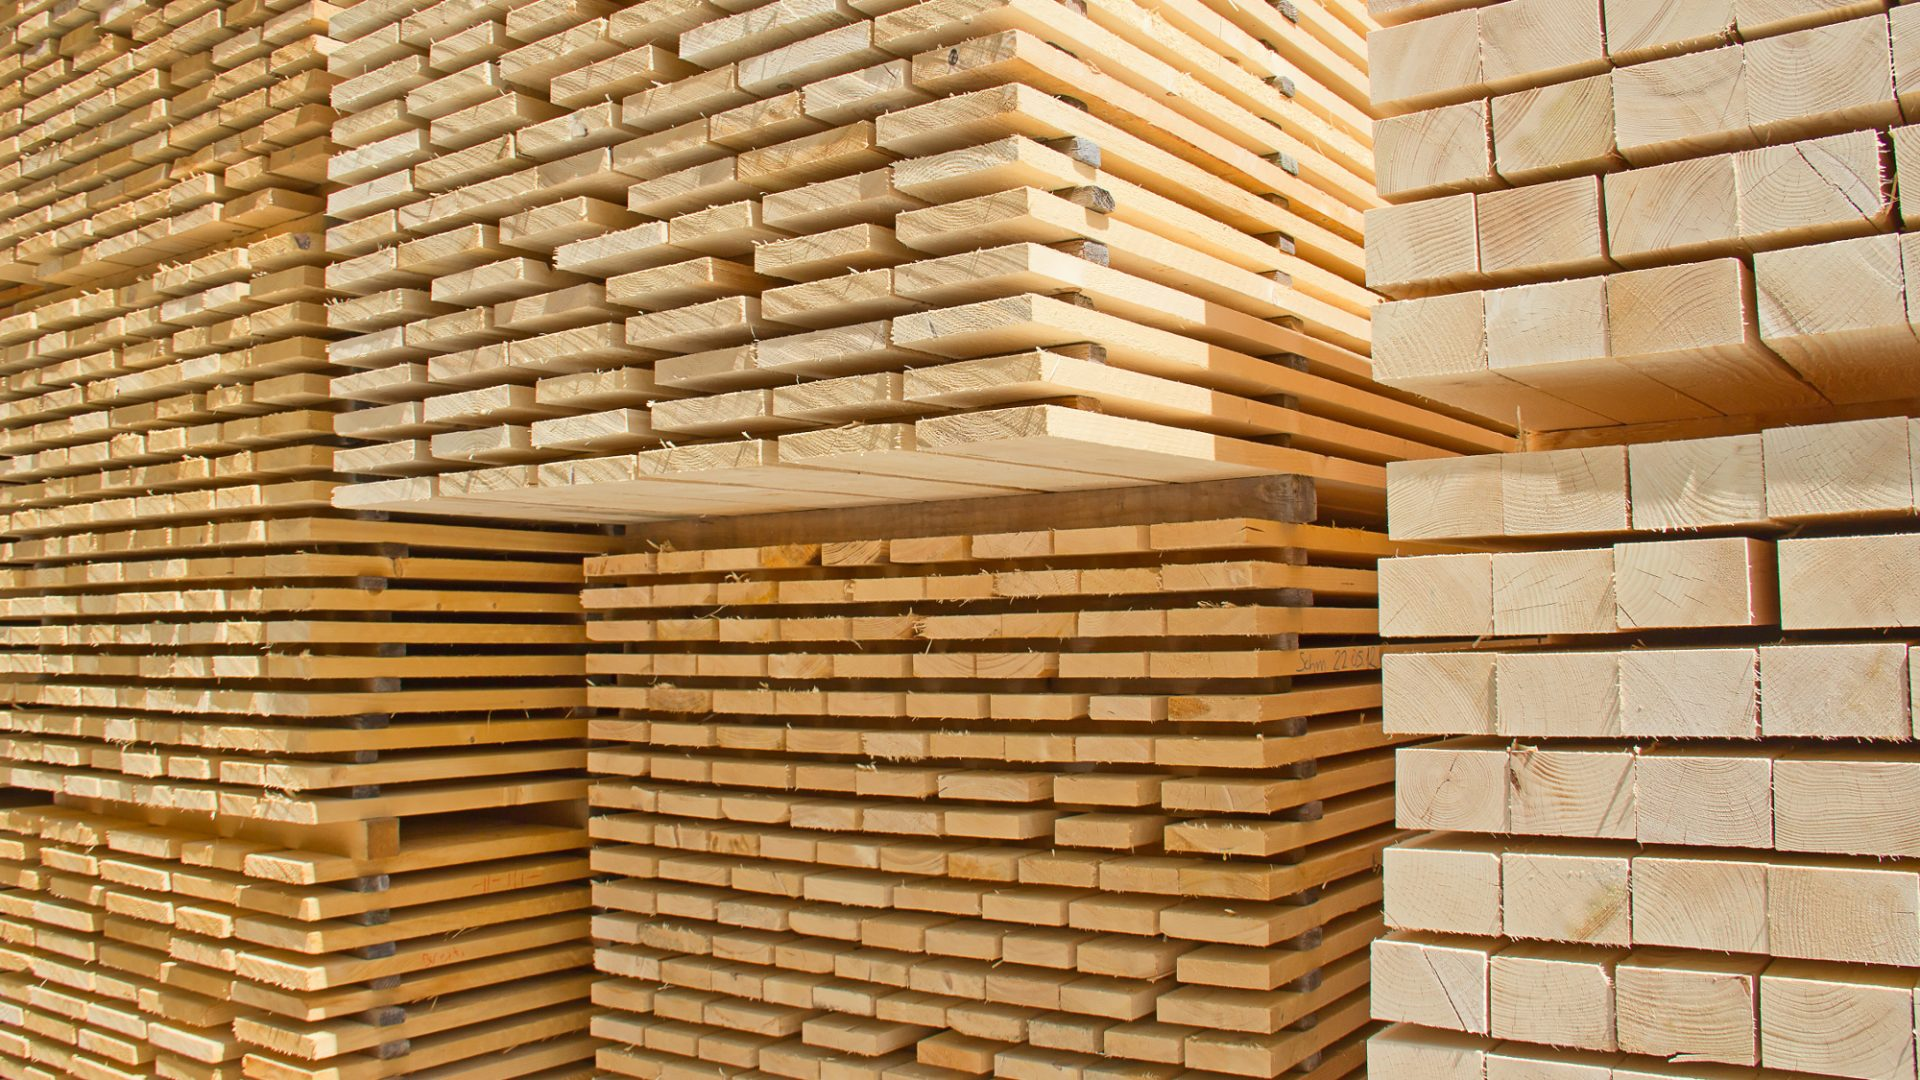 SALES OF SAWN TIMBER, PALLETS AND SIDE BOARDS